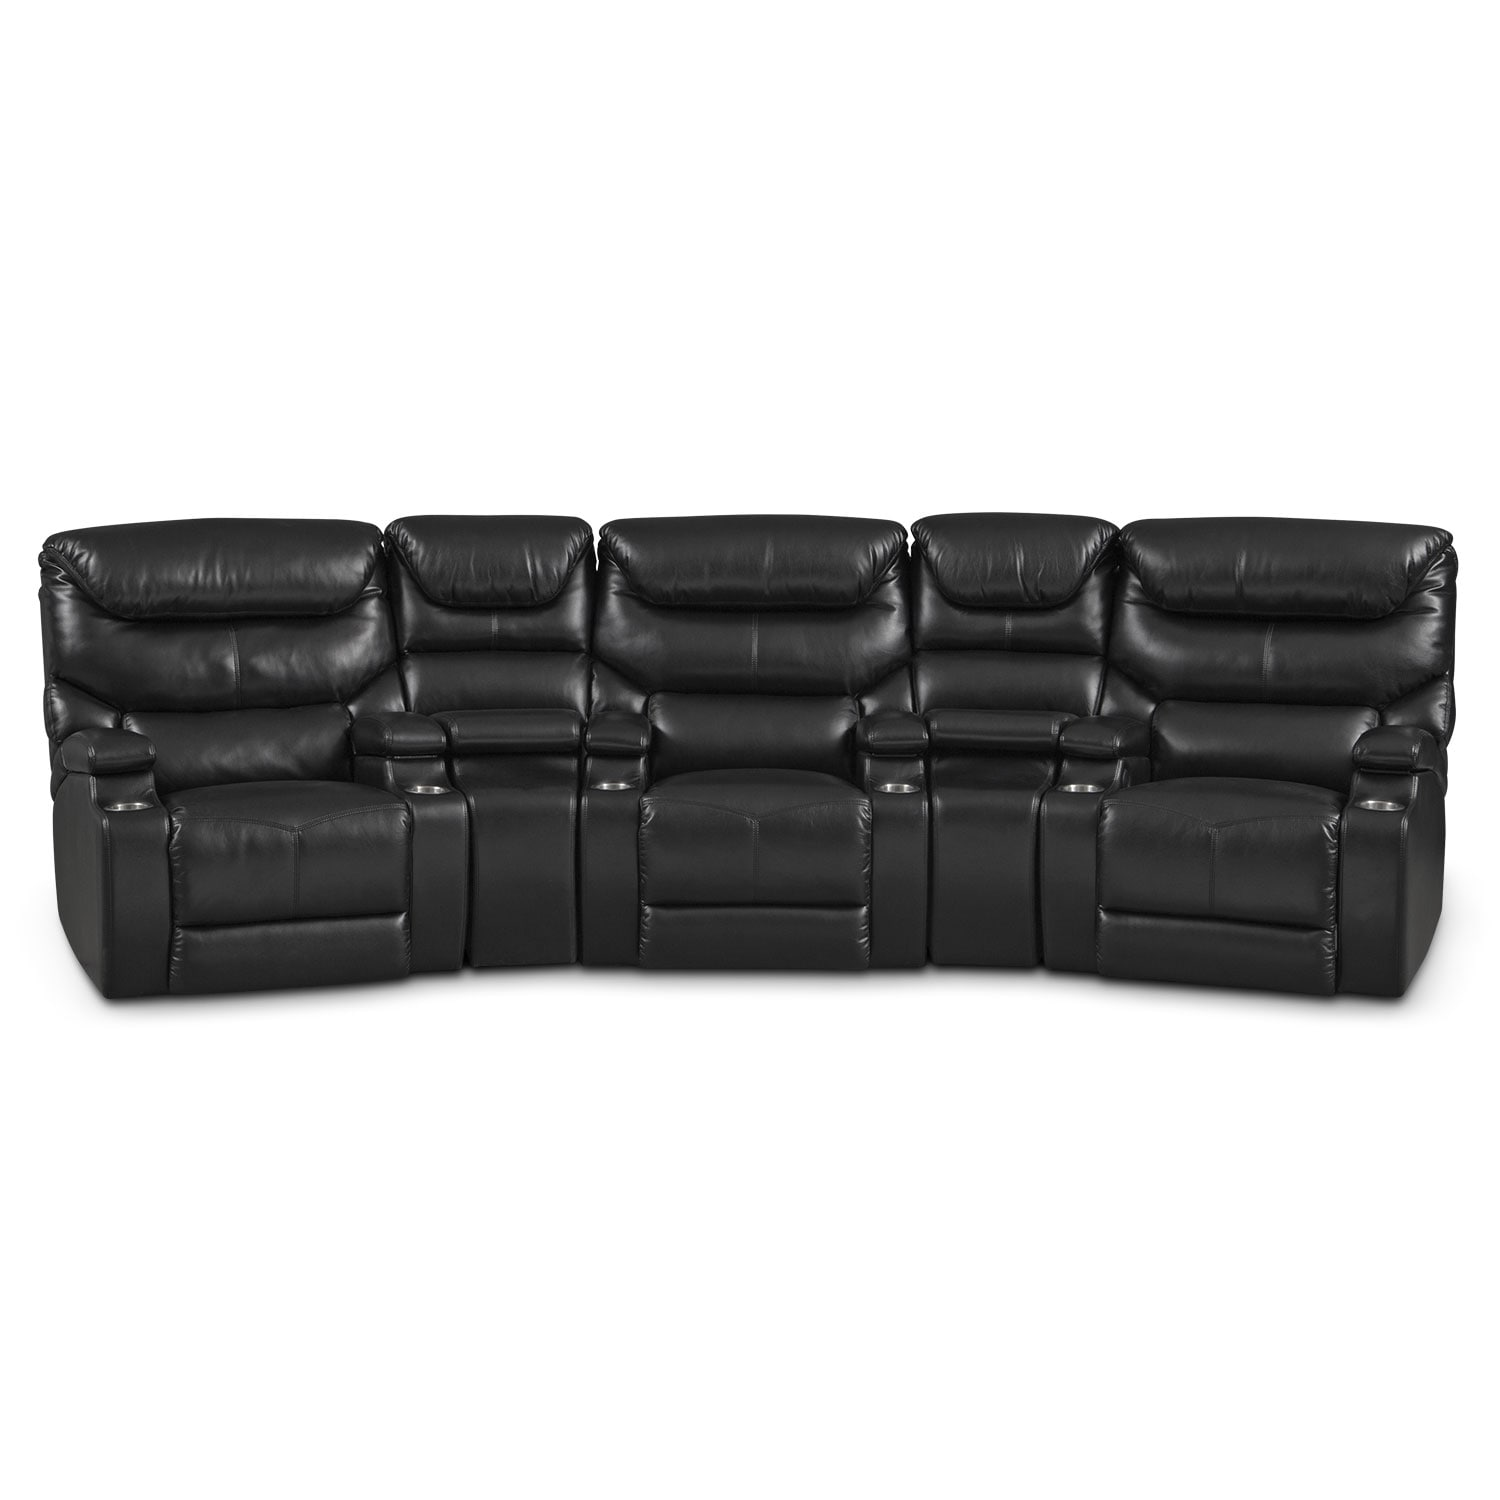 Living Room Furniture - Saturn 5-Piece Power Home Theater Sectional